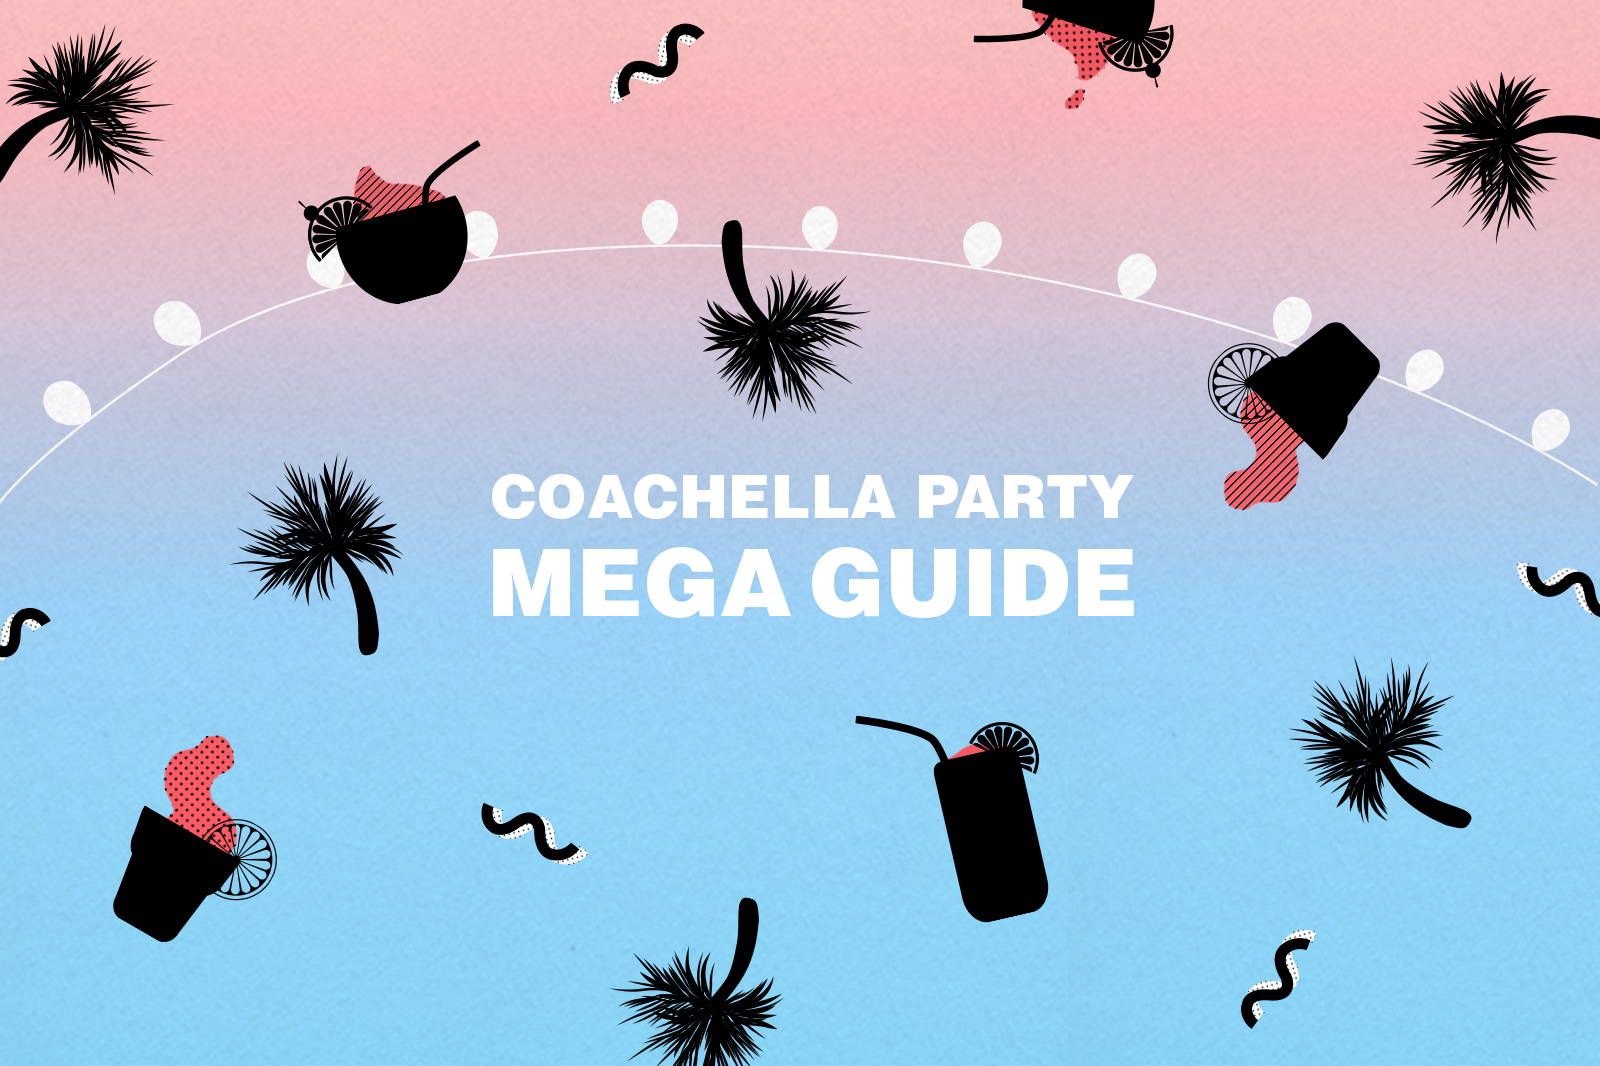 design_coachella.jpg